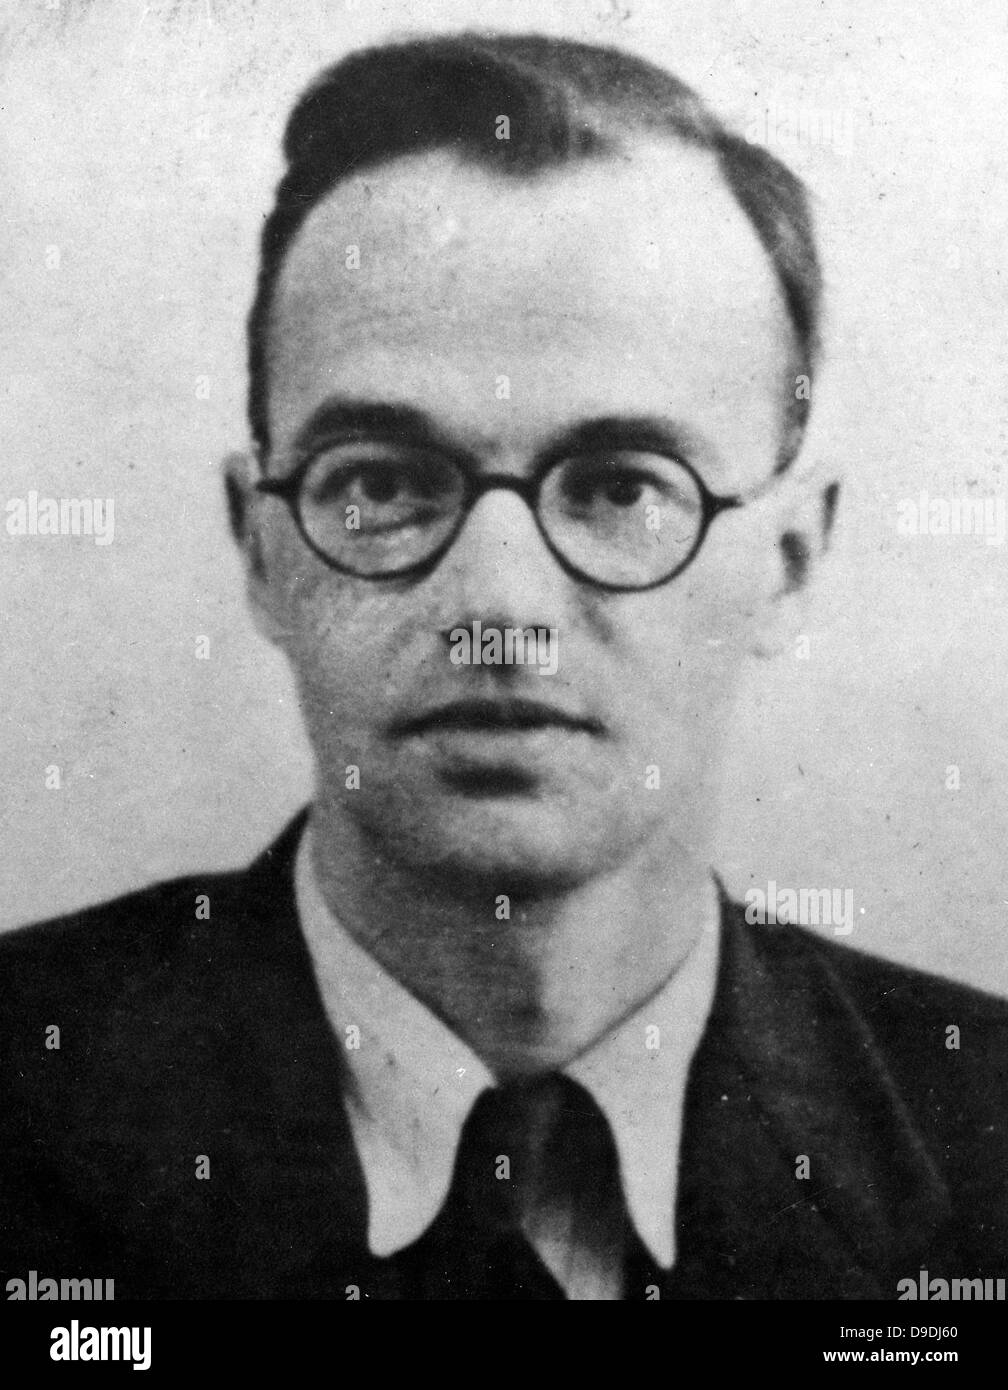 Klaus Fuchs, Emil Julius Klaus Fuchs, German theoretical physicist and atomic spy - Stock Image